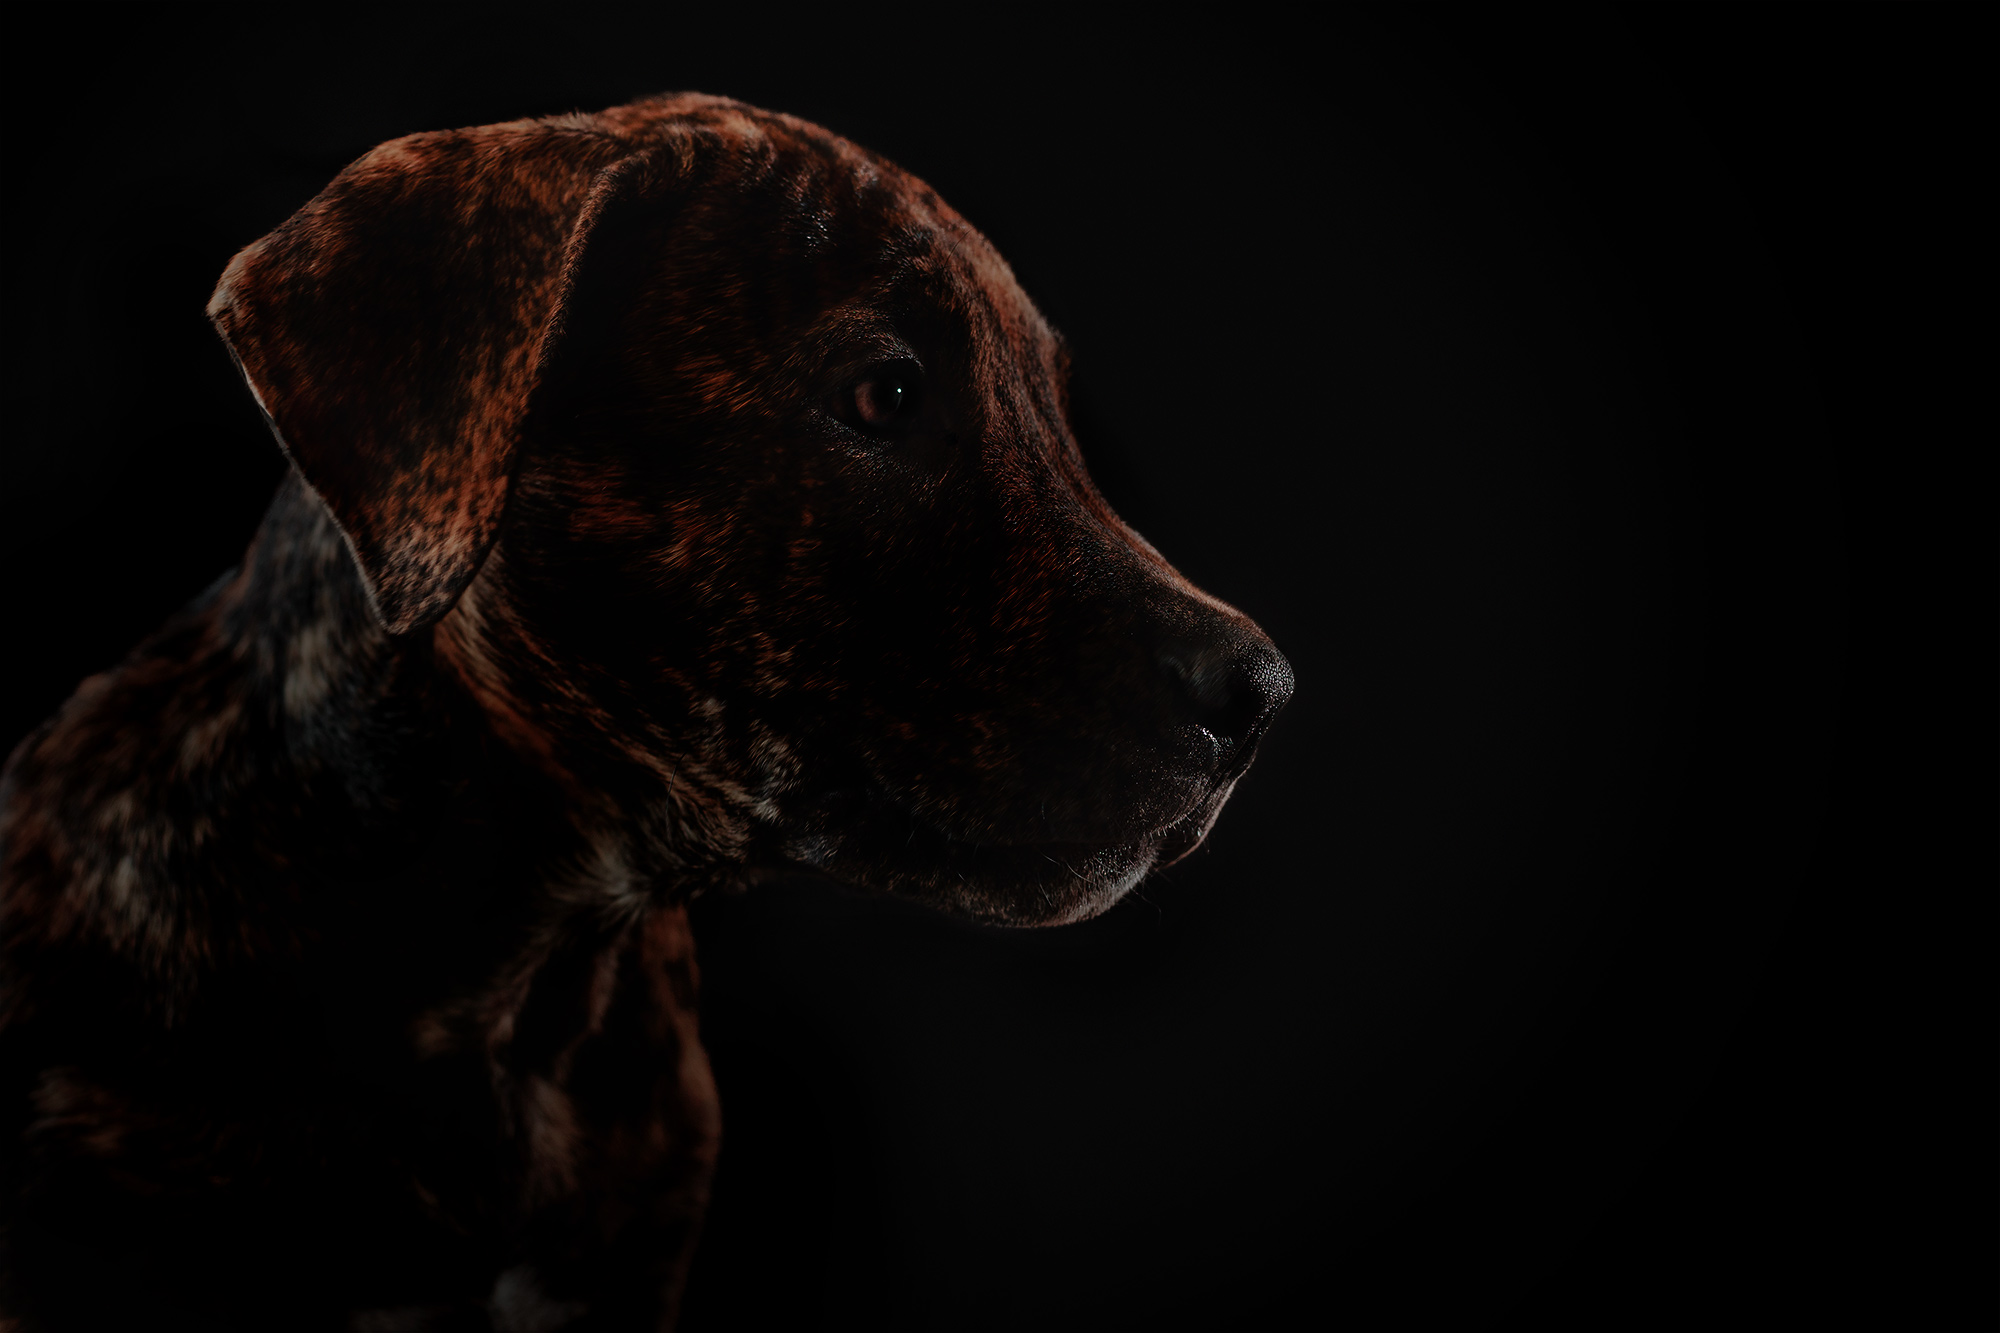 dog-photography-silhouette-lighting